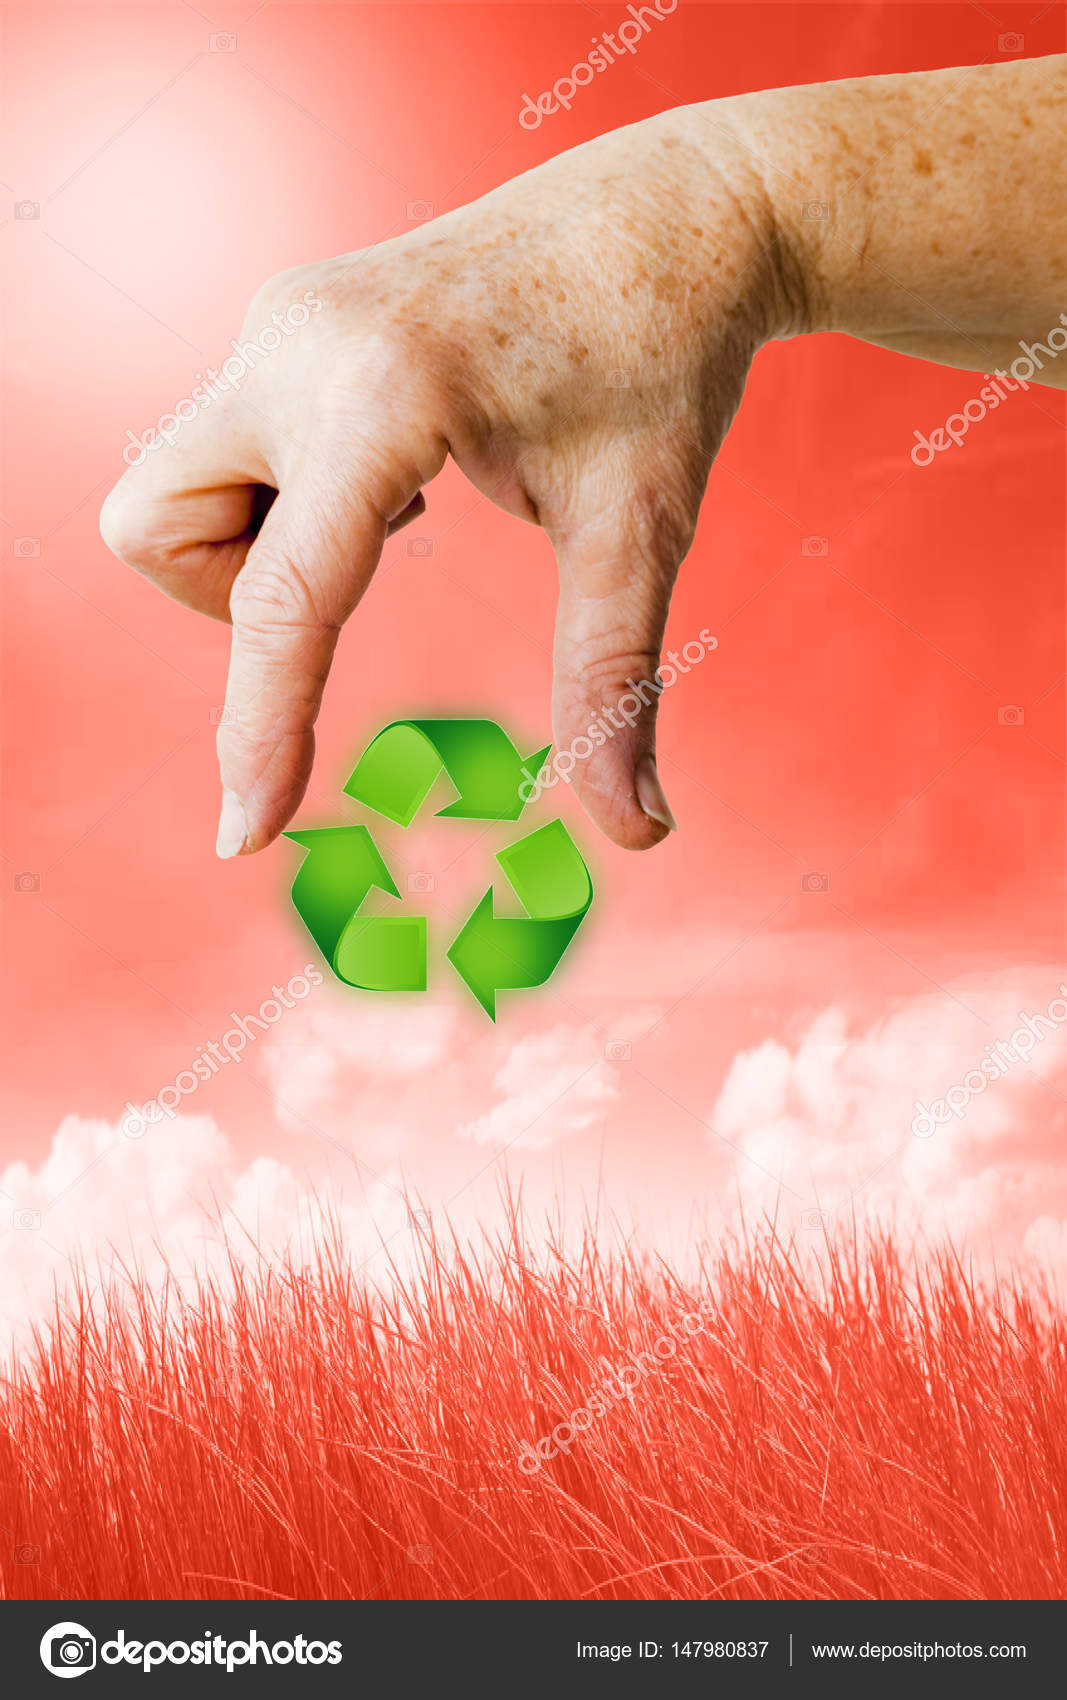 5bb5fa4e4b87 The hand of a woman is holding the symbol of recycling with two fingers.  Background is a beautiful but reddish and poisoned environment that needs to  be ...